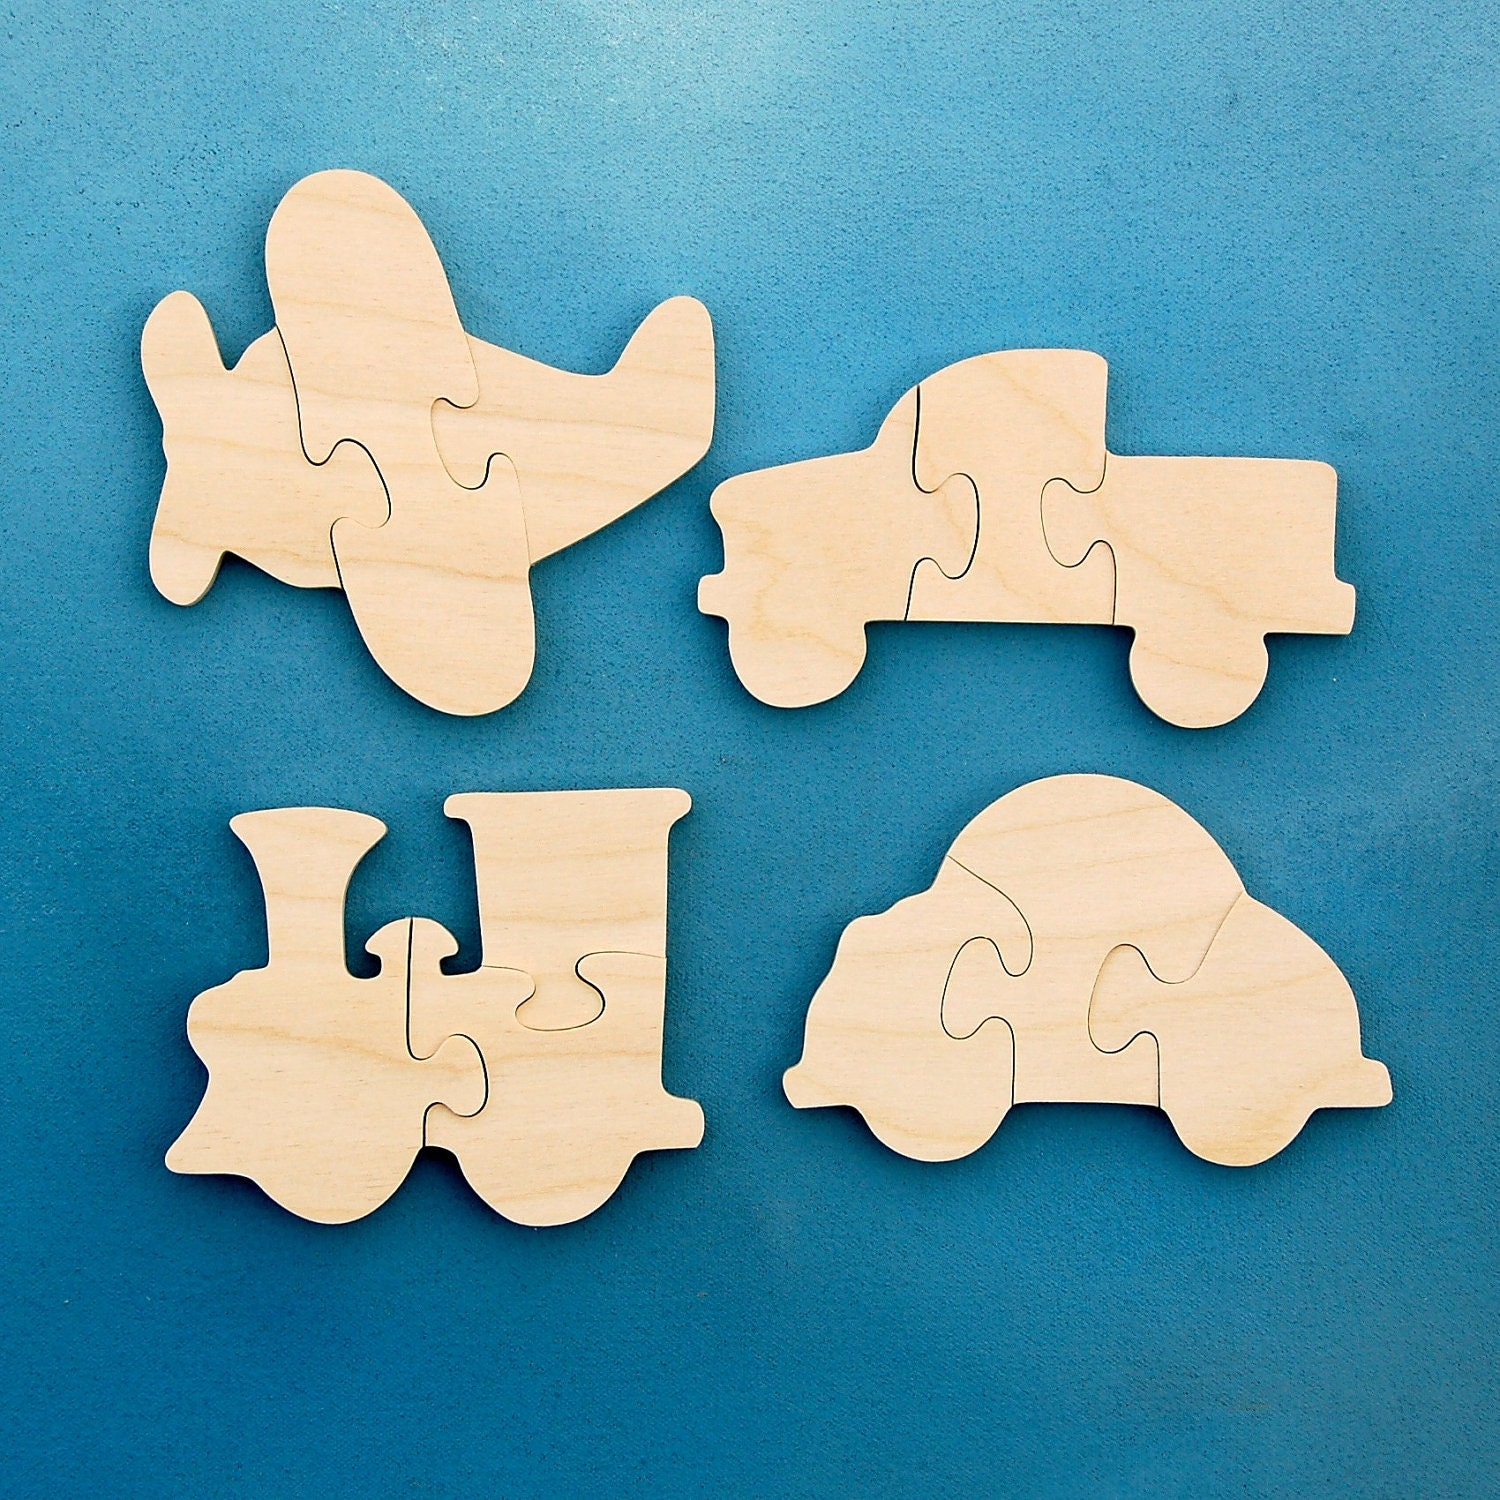 Childrens Wood Puzzles Airplane Train Car Truck Set of 4 Wooden Toddler Puzzle